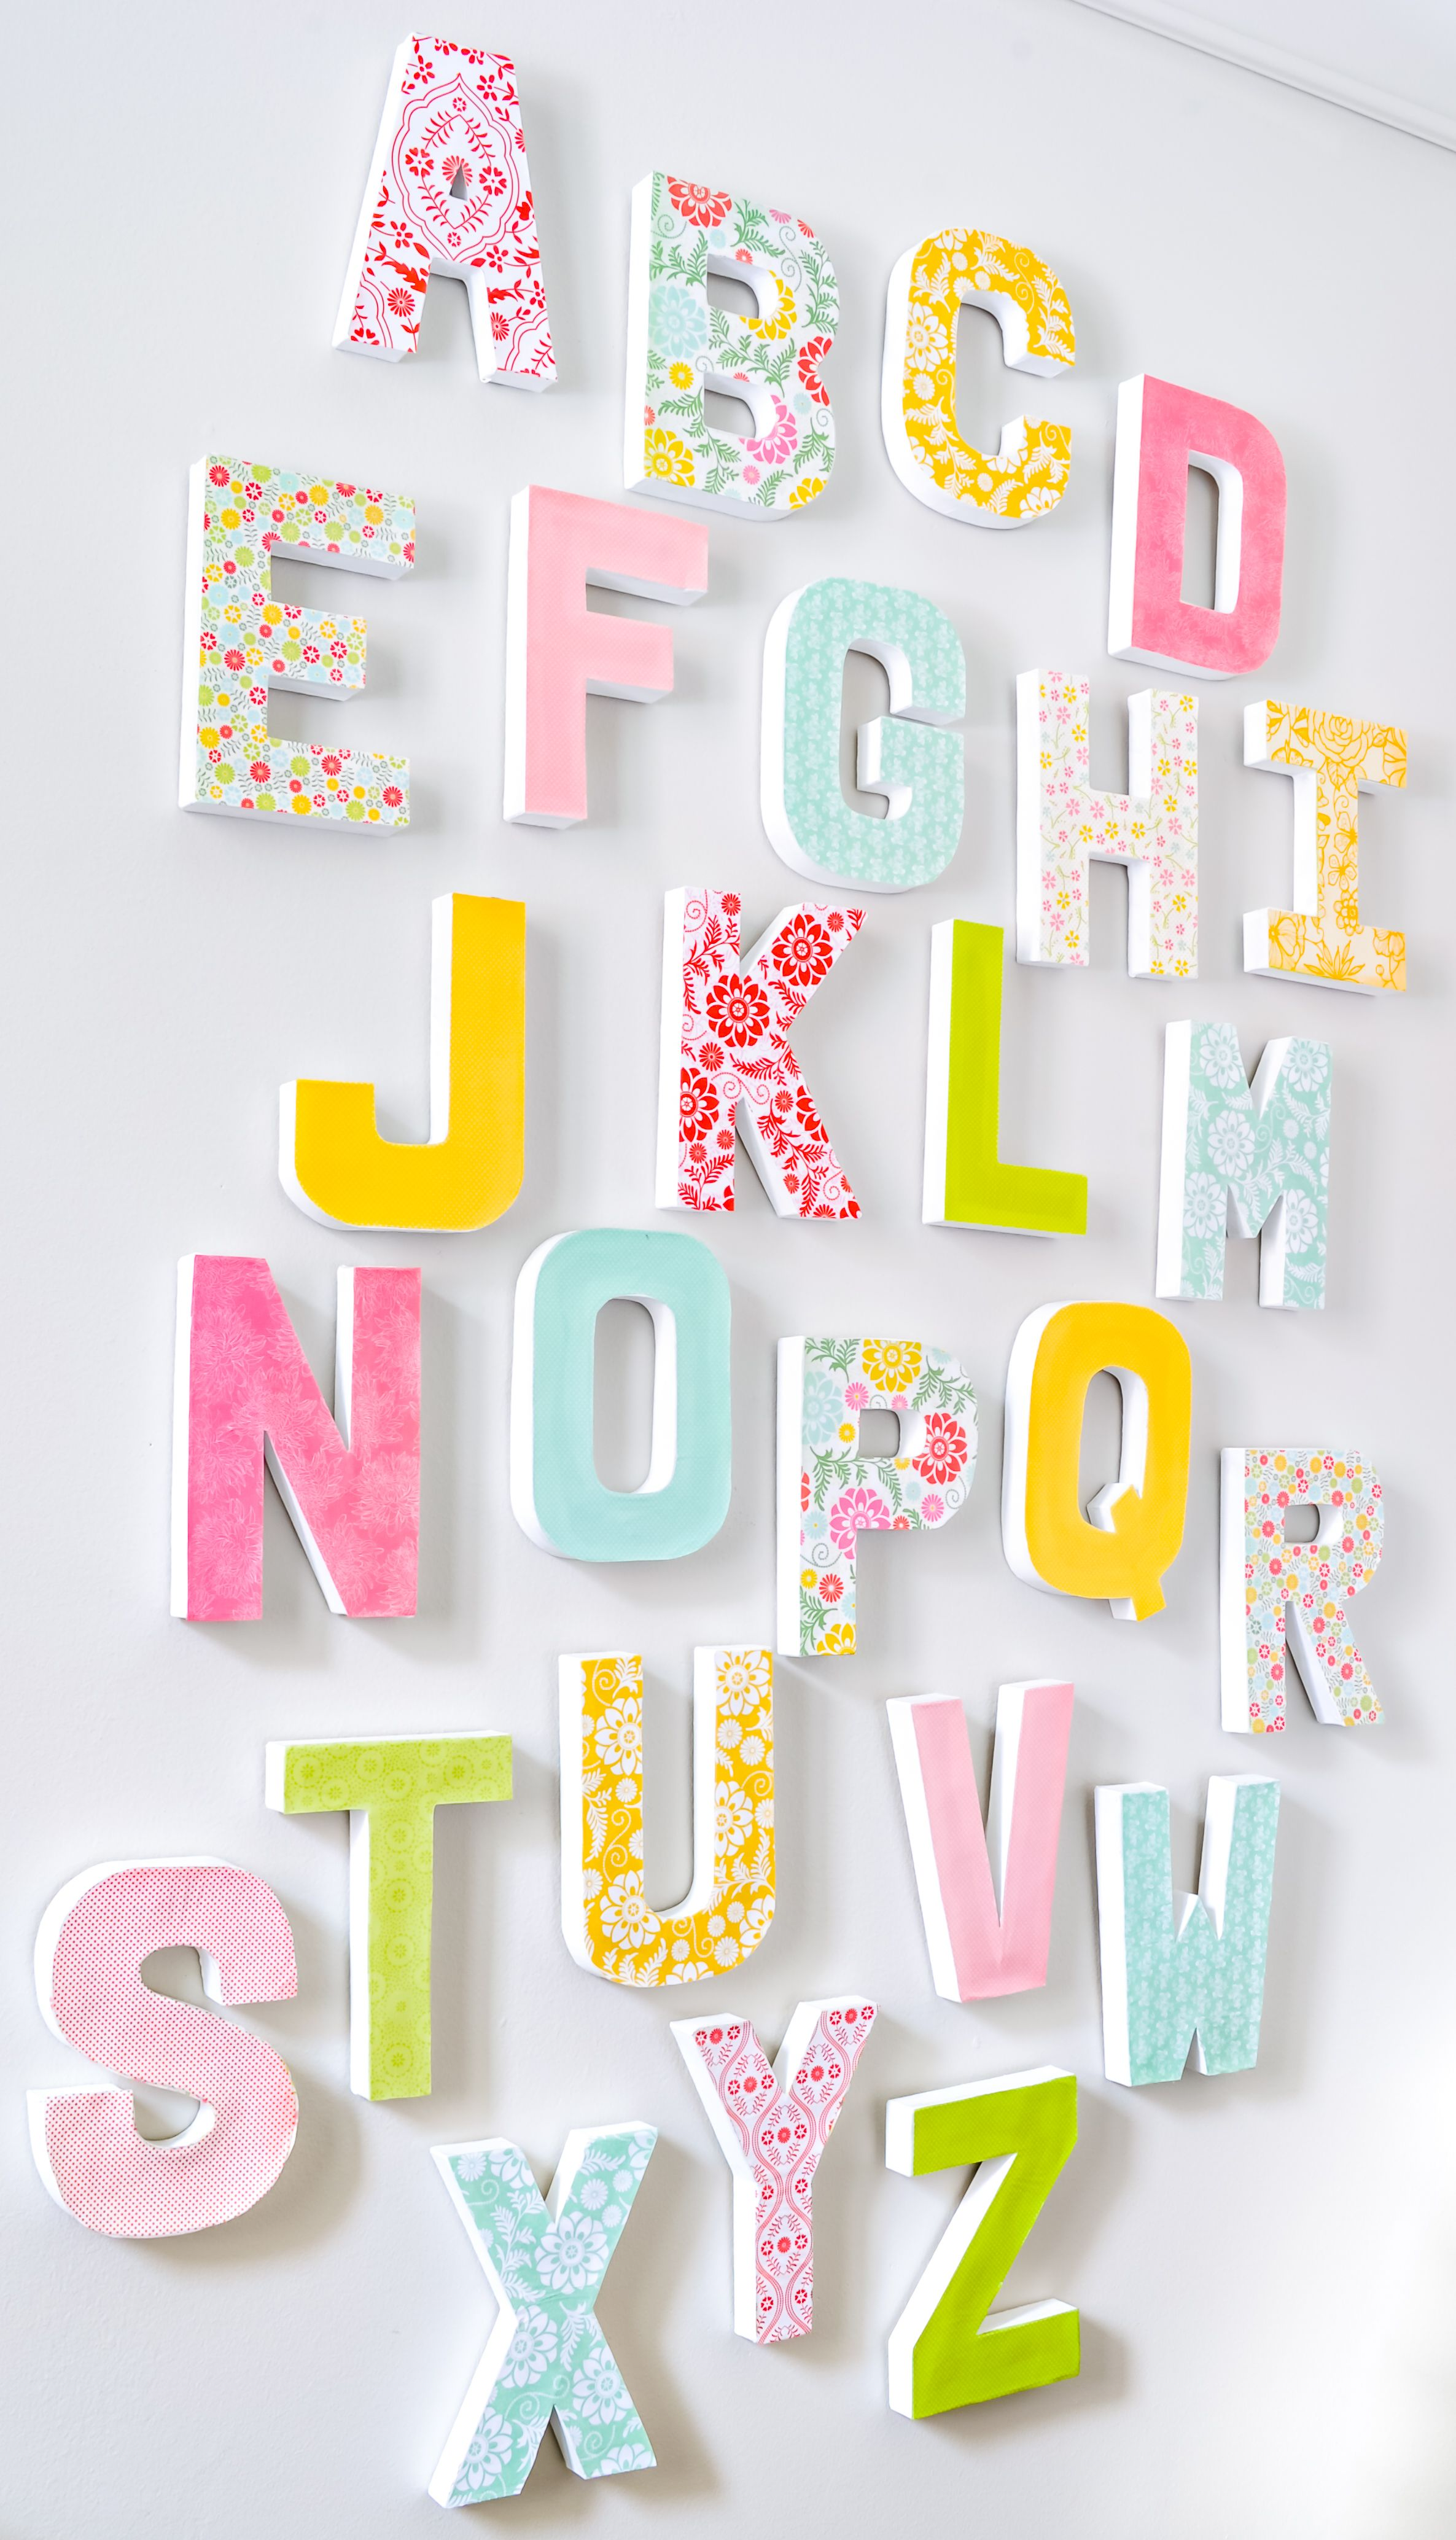 Diy Wall Letters Letter A Crafts Cardboard Letters